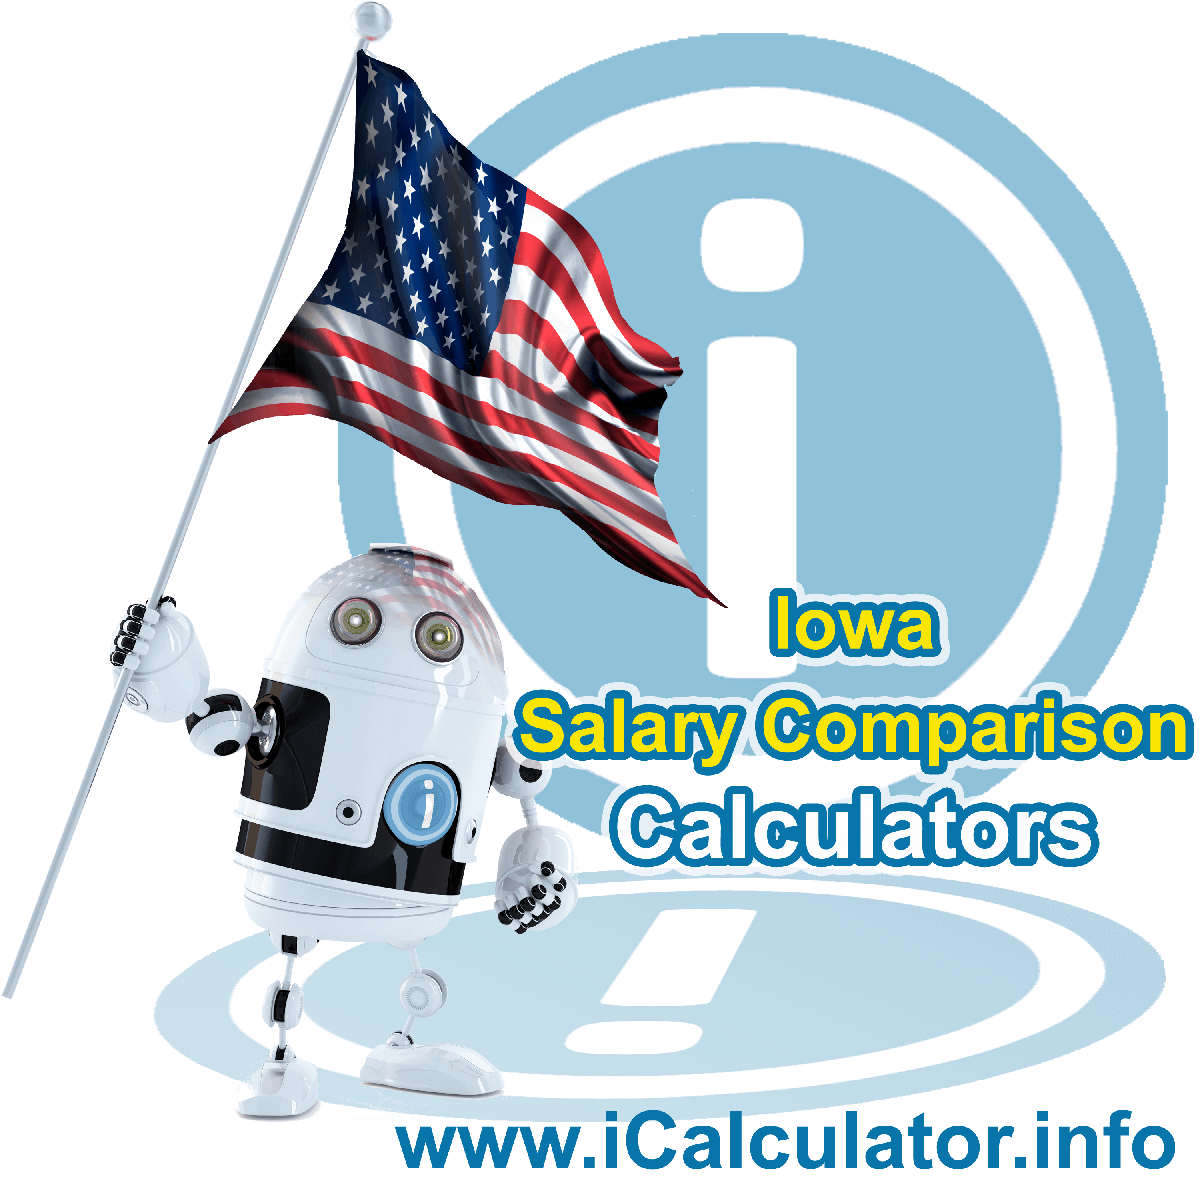 Iowa Salary Comparison Calculator 2020 | iCalculator | The Iowa Salary Comparison Calculator allows you to quickly calculate and compare upto 6 salaries in Iowa or between other states for the 2020 tax year and historical tax years. Its an excellent tool for jobseekers, pay raise comparison and comparison of salaries between different US States